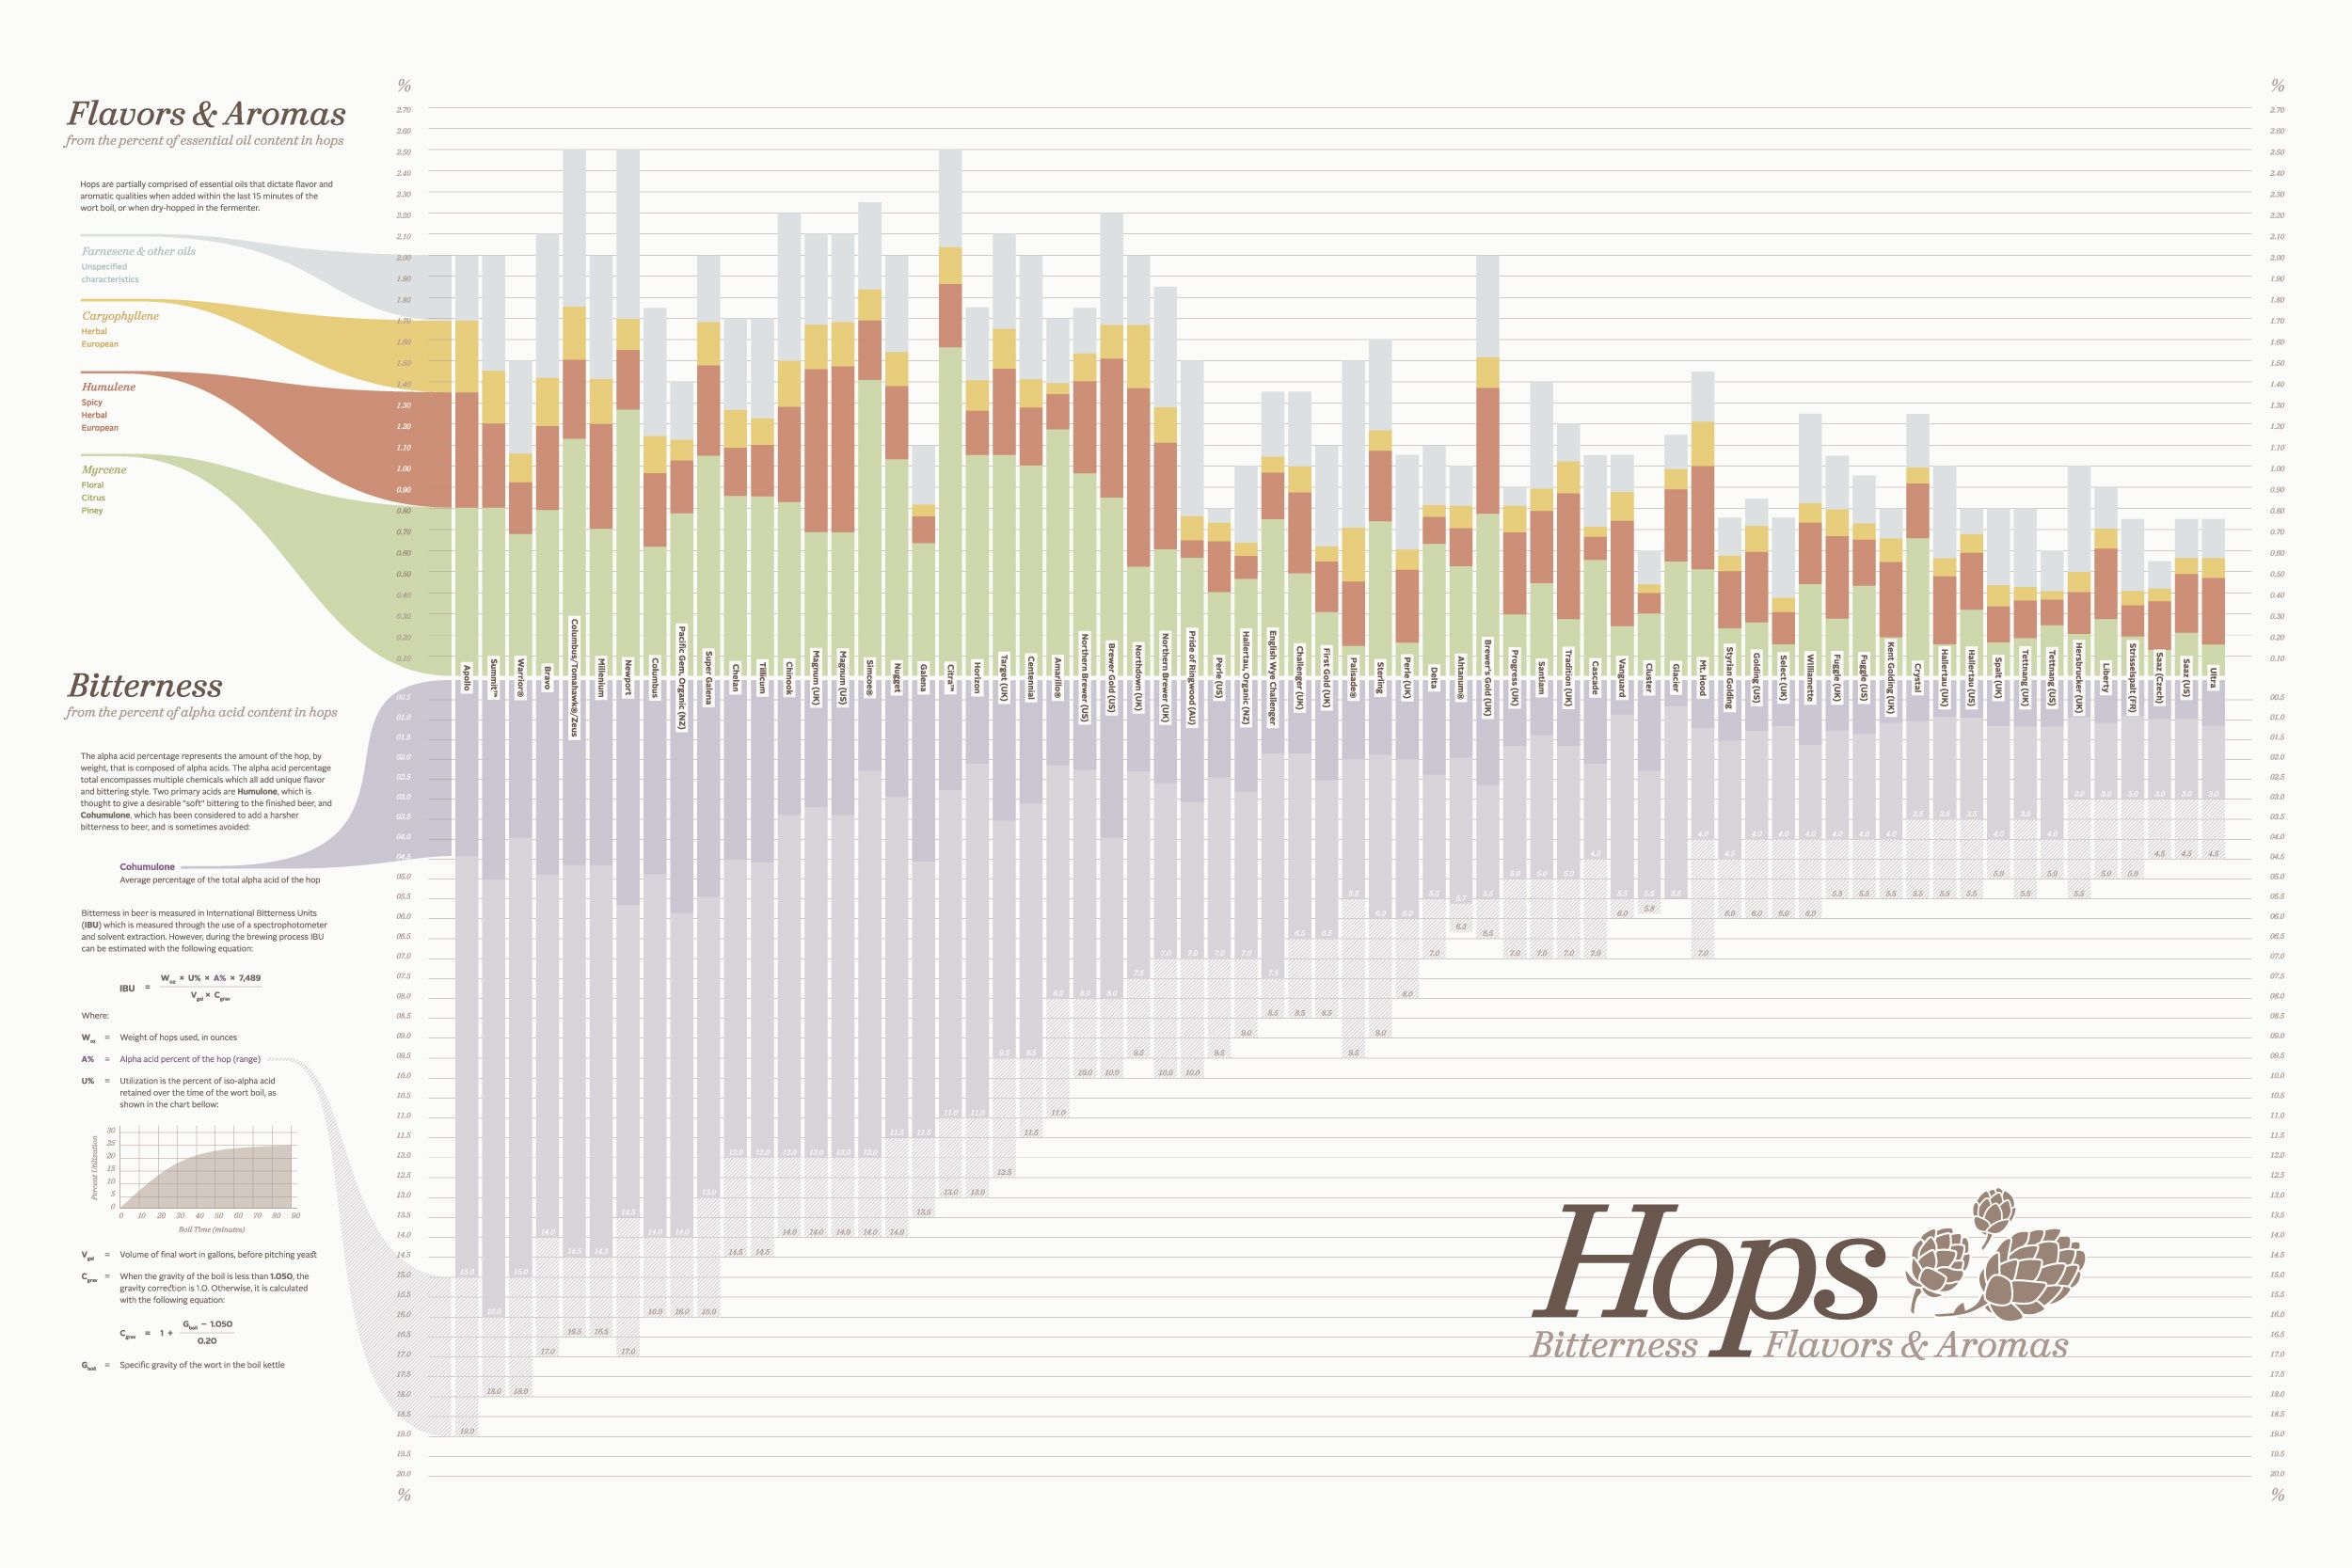 Hops chart visualizing bitterness flavors aromas of for Craft beer ibu chart